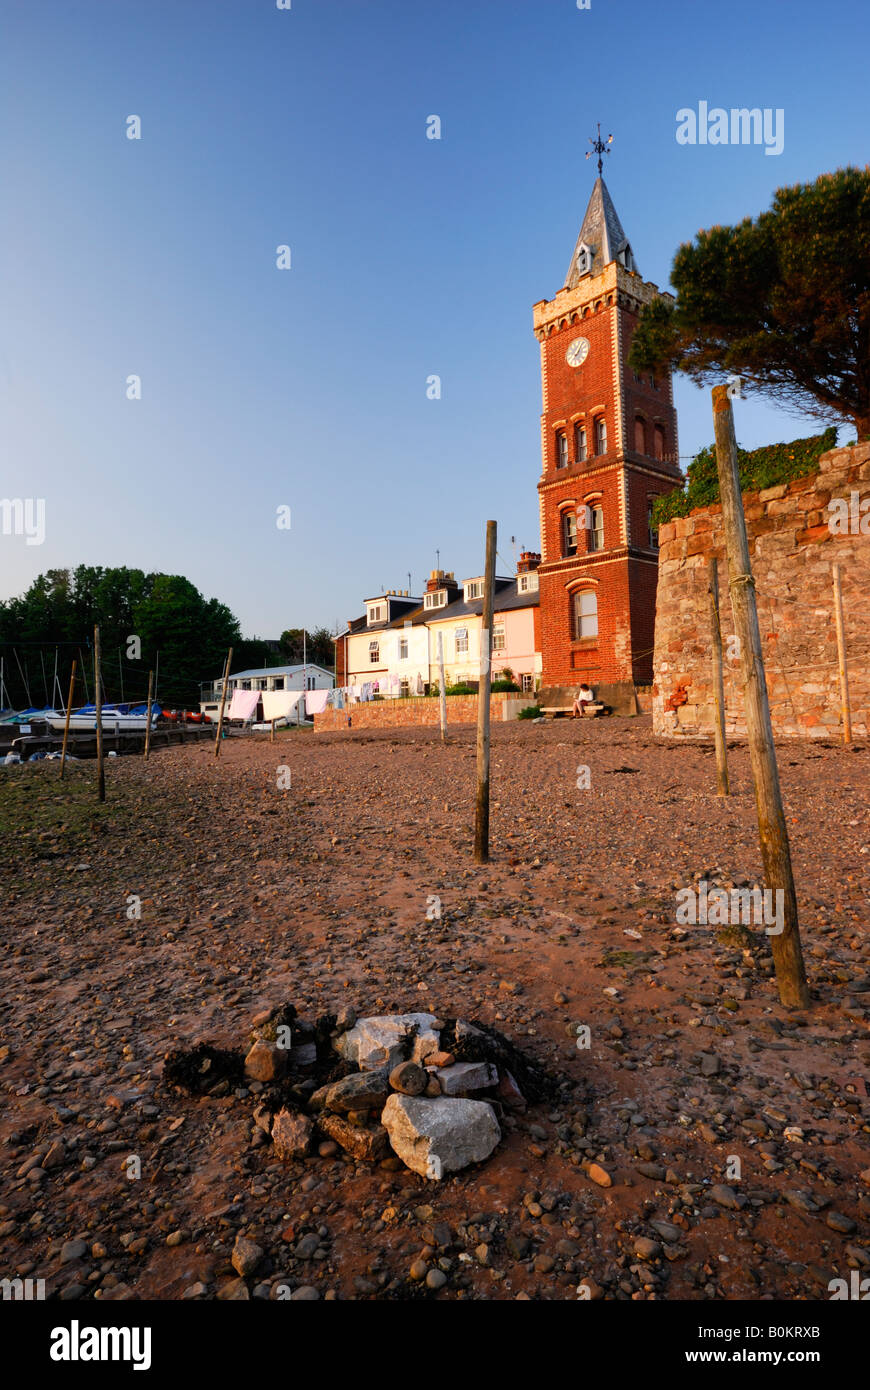 View of clock tower at Lympstone, Devon, UK from the Exe Estuary at low tide in evening light - Stock Image